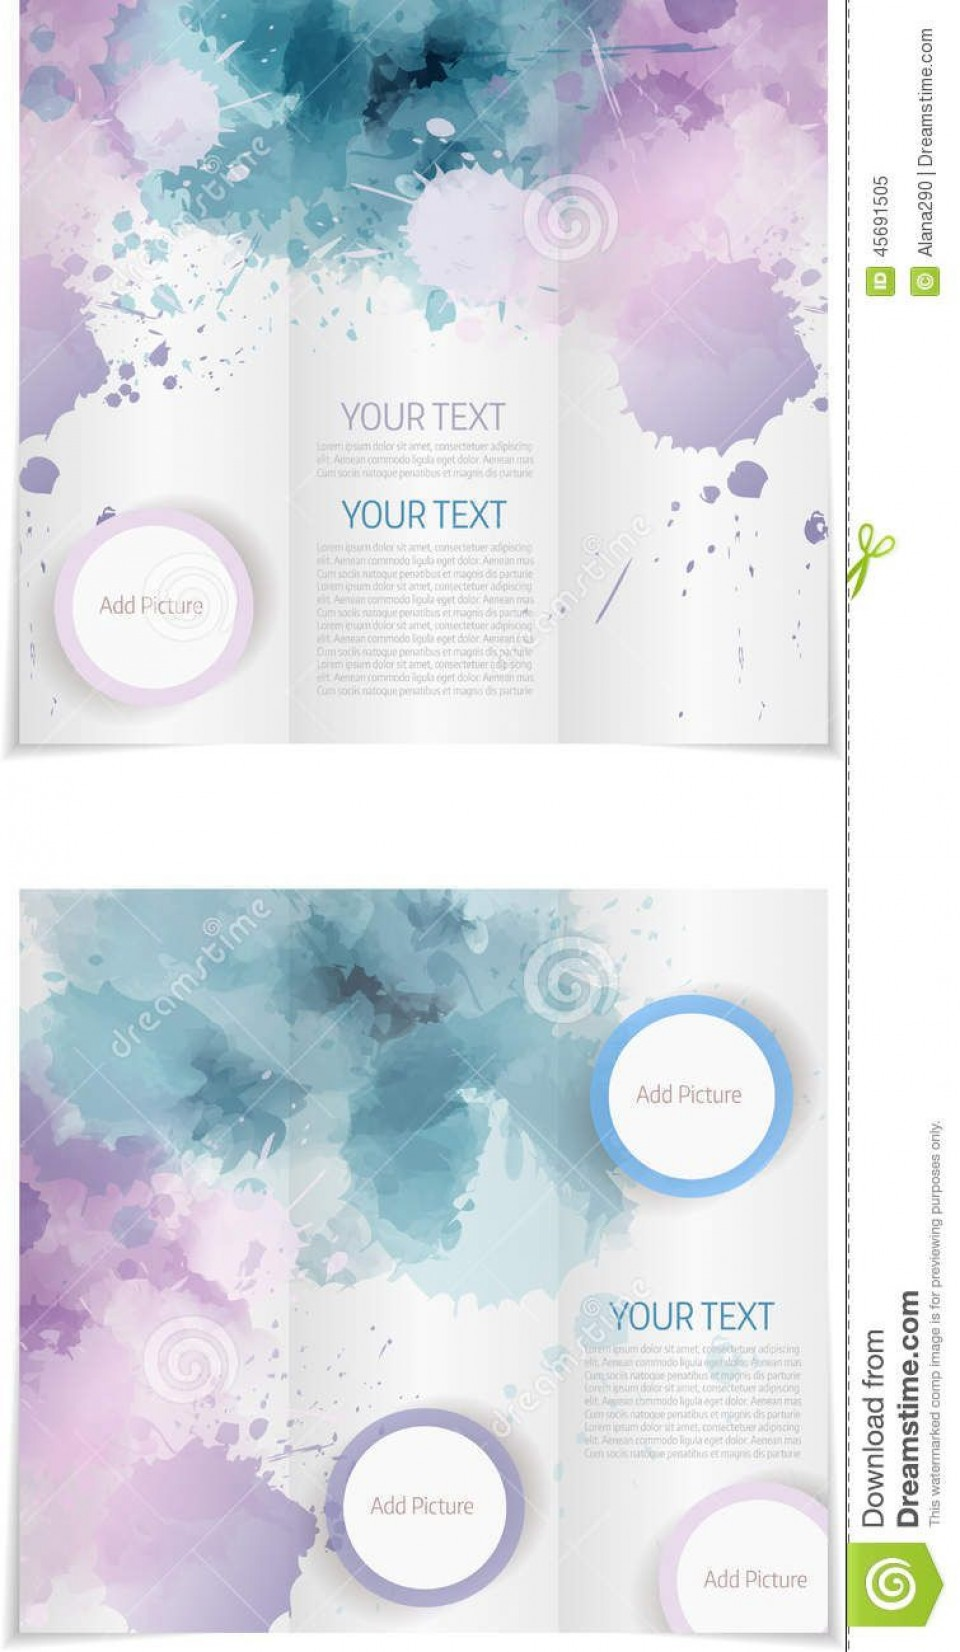 010 Unbelievable M Word Tri Fold Brochure Template Highest Clarity  Microsoft Free Download960